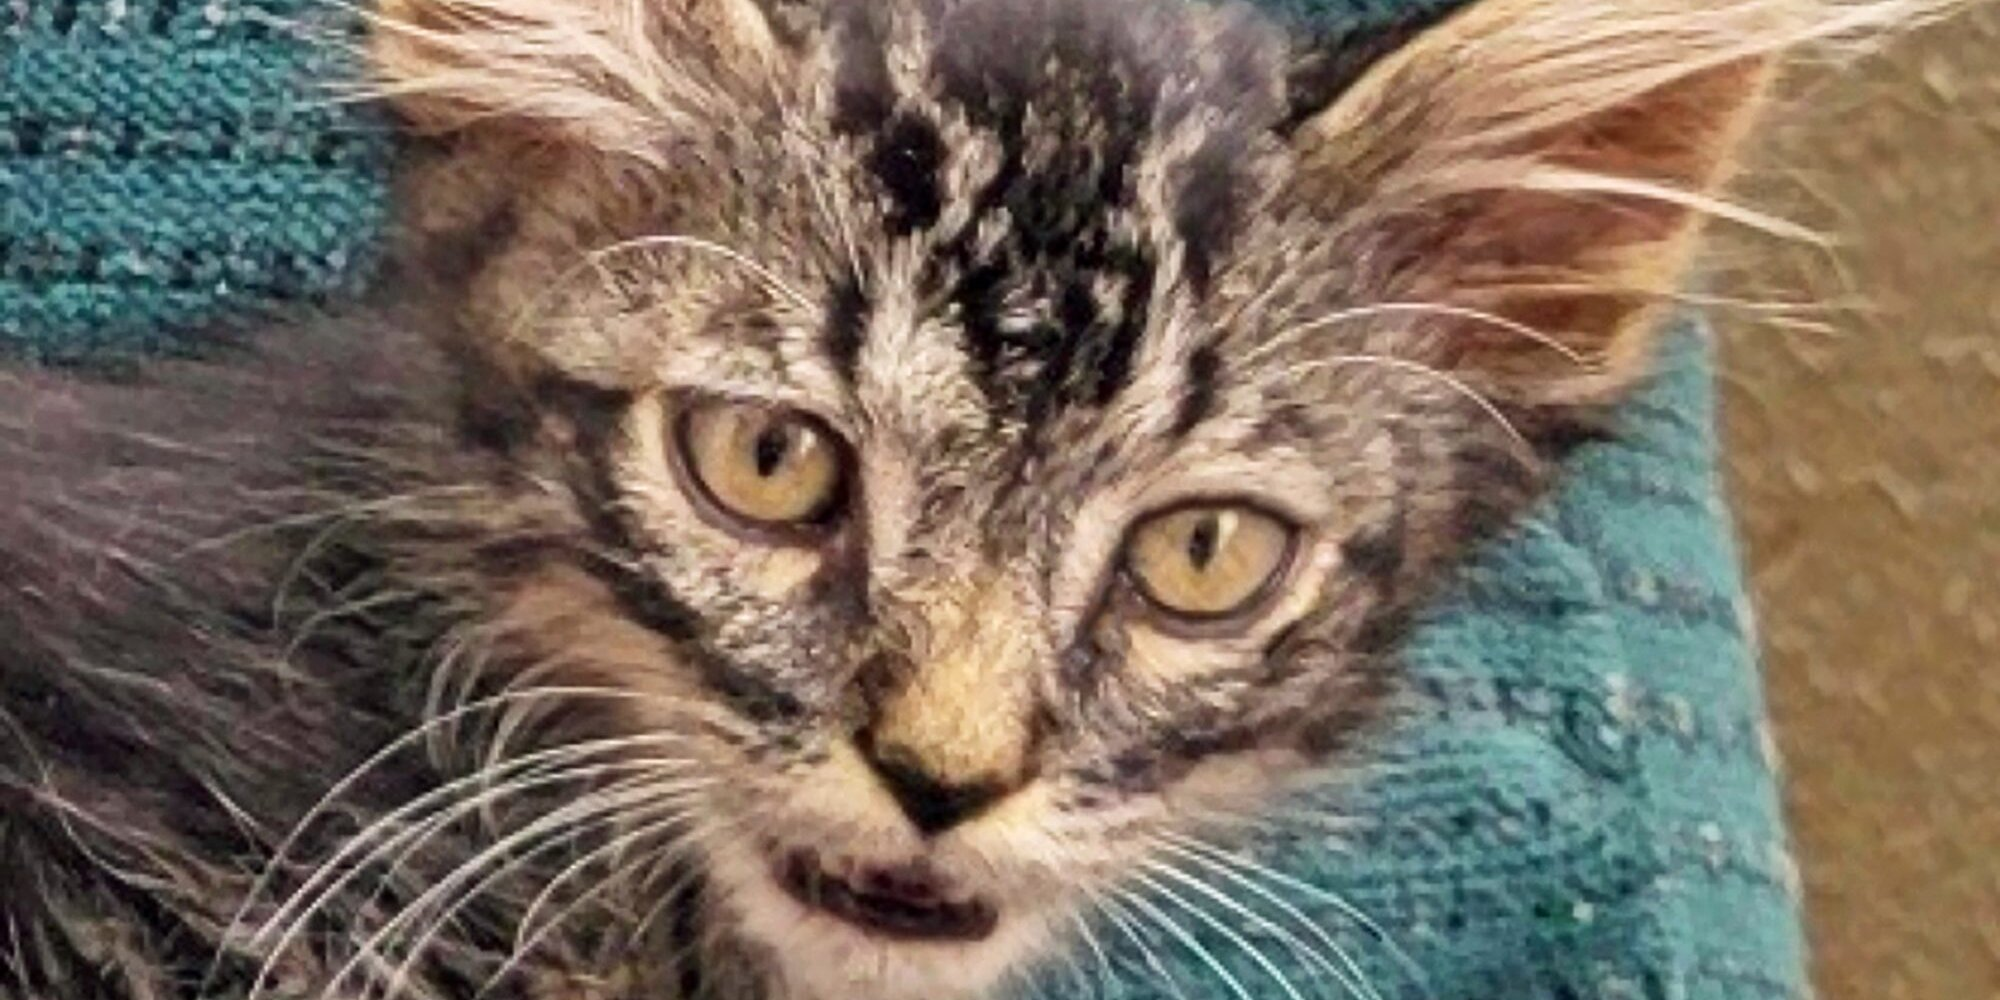 How a Dream Team Joined Forces to Save This Tiny Kitten From Being Flushed Away